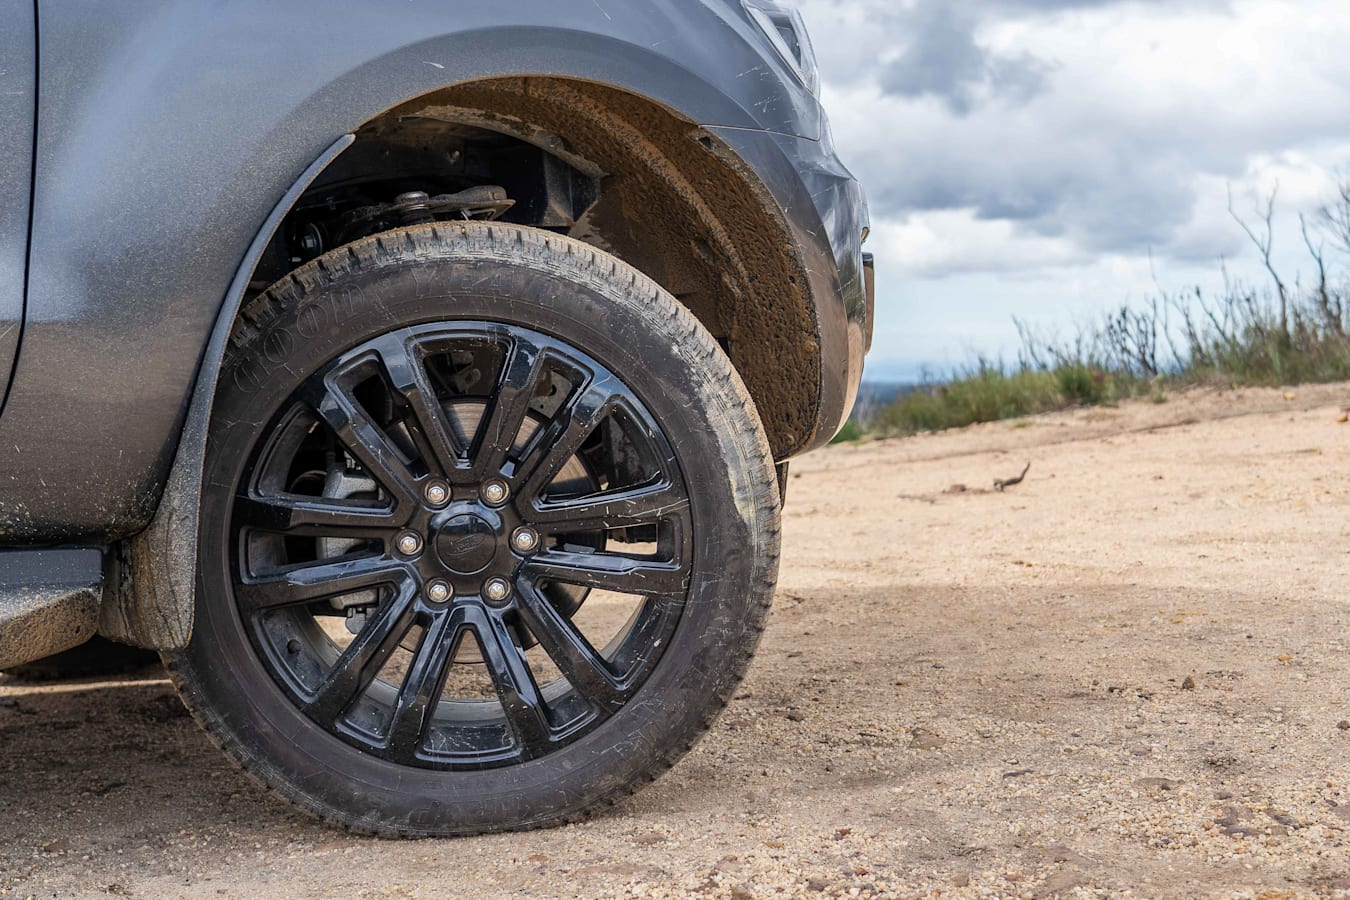 4 X 4 Australia Reviews 2021 June 2021 Ford Everest Sport Wheel And Tyre